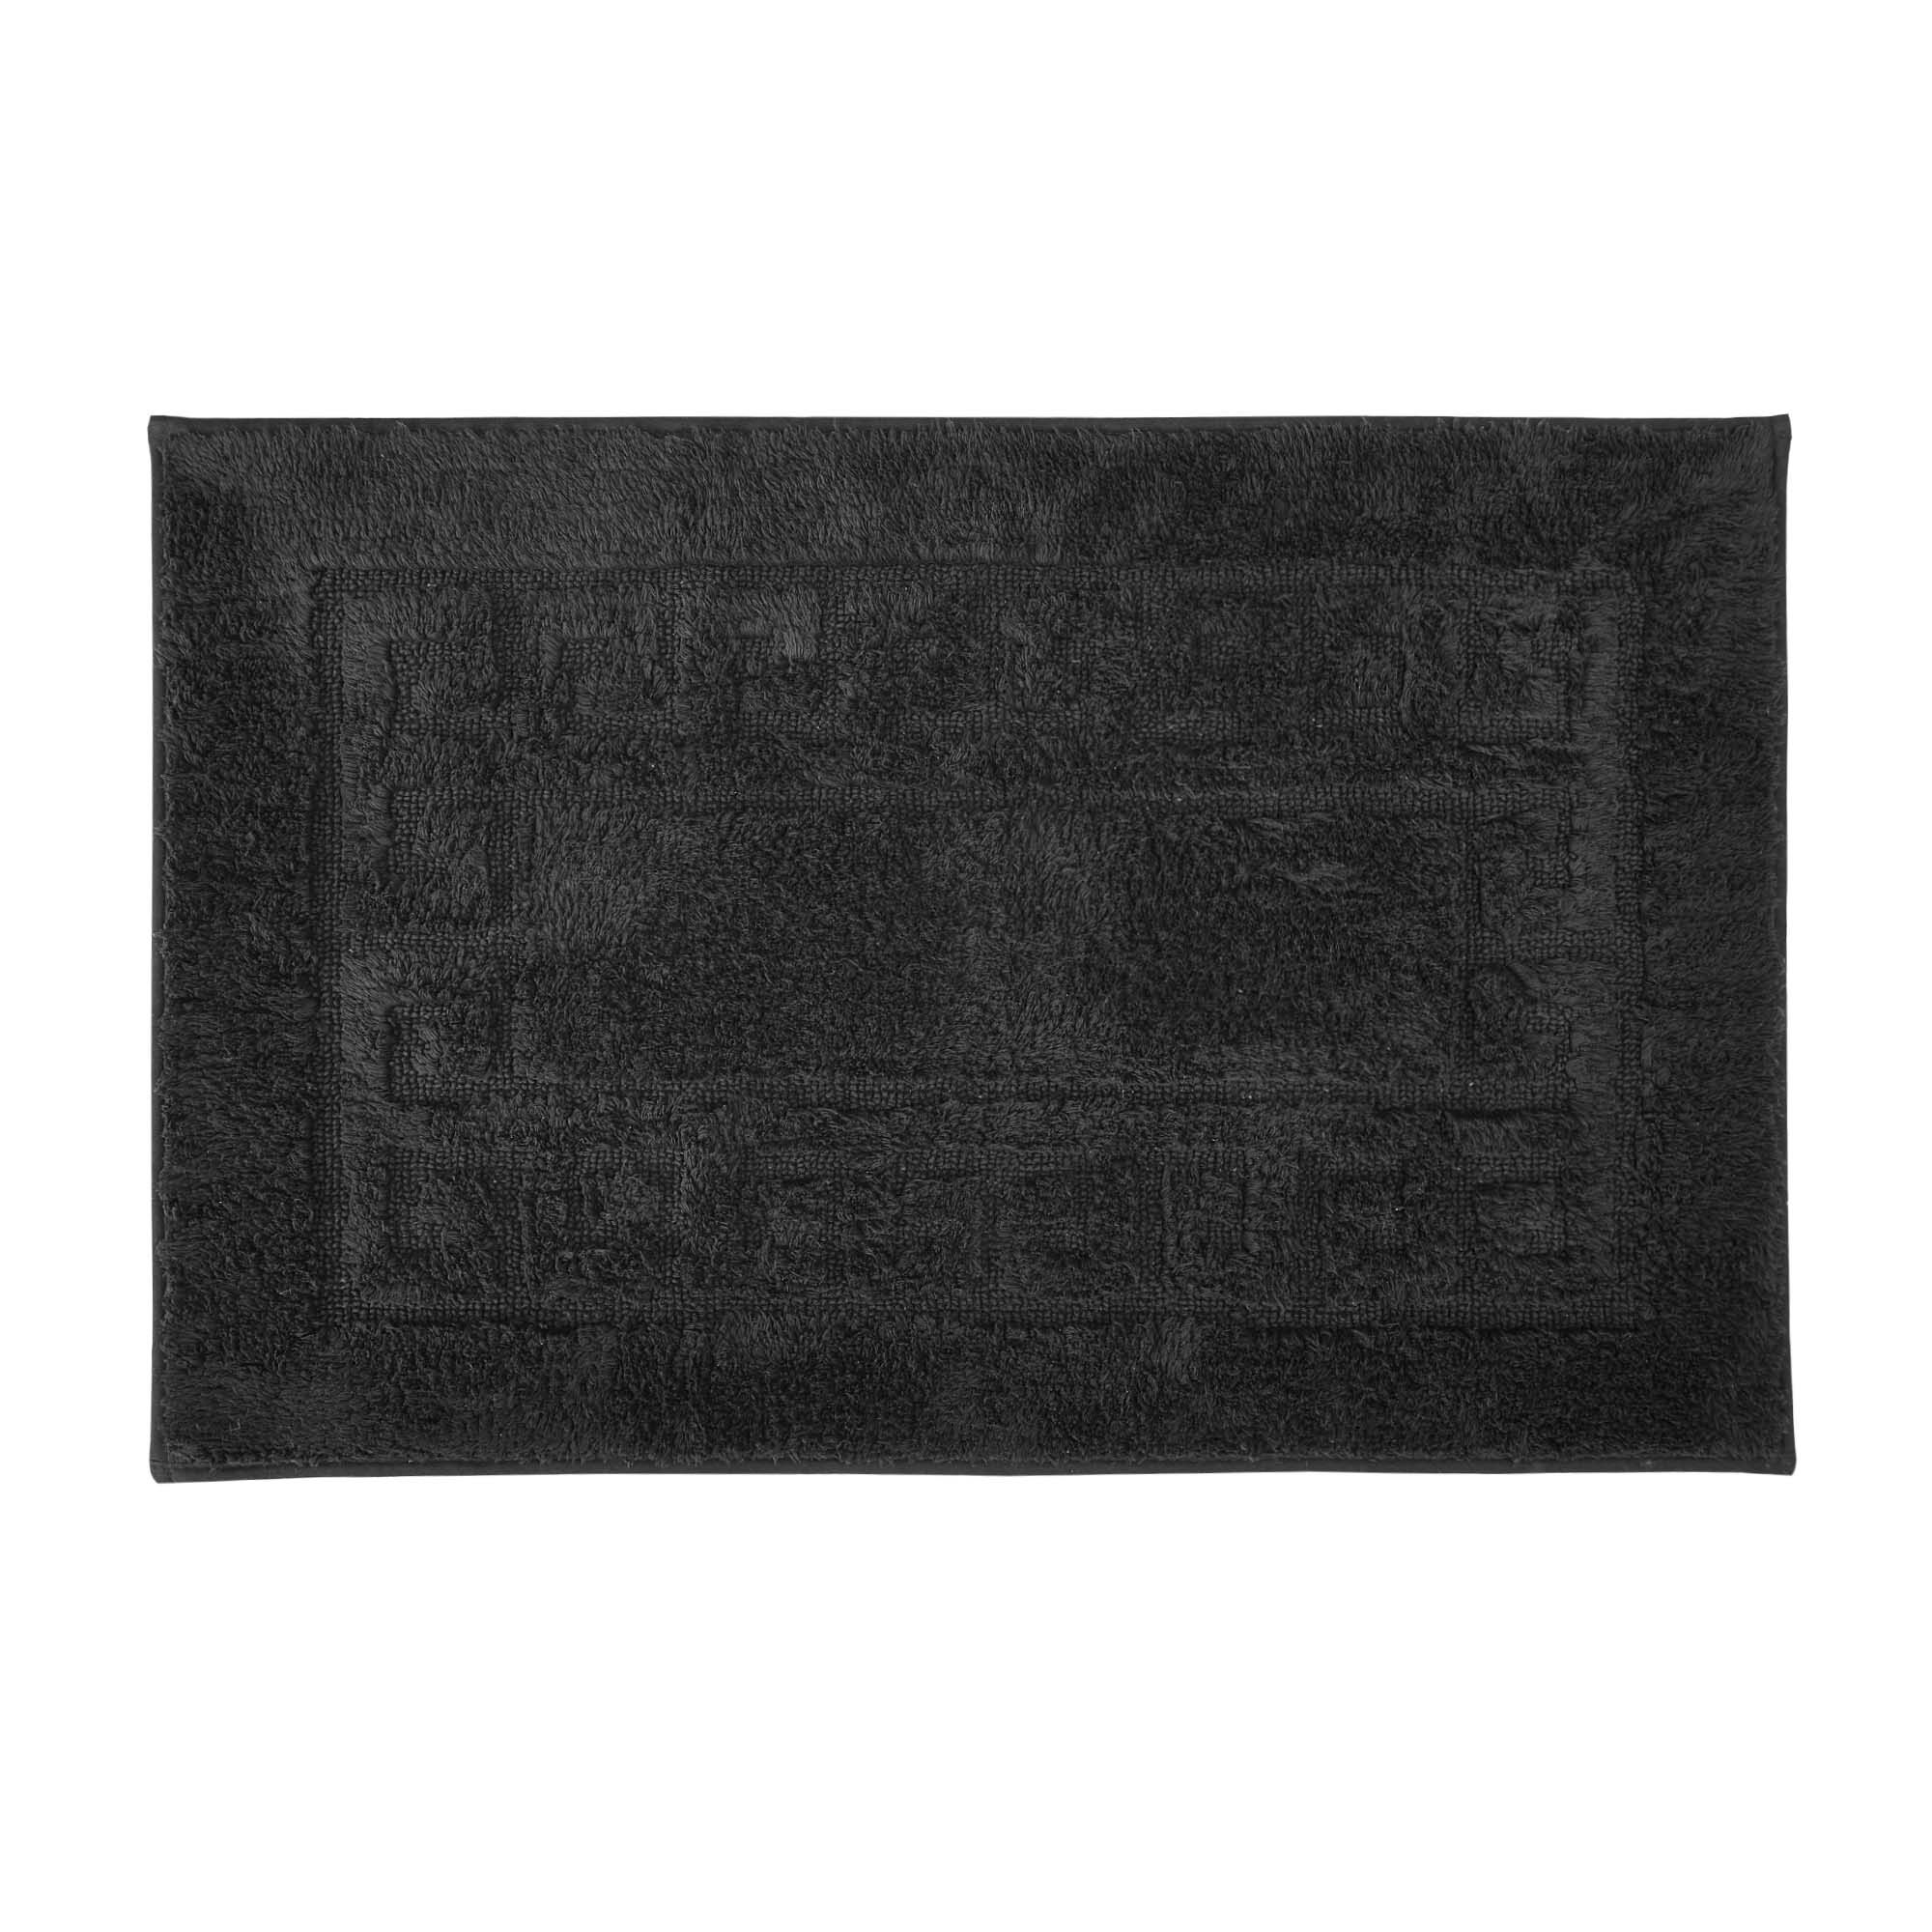 Photo of Luxury cotton non-slip bath mat black